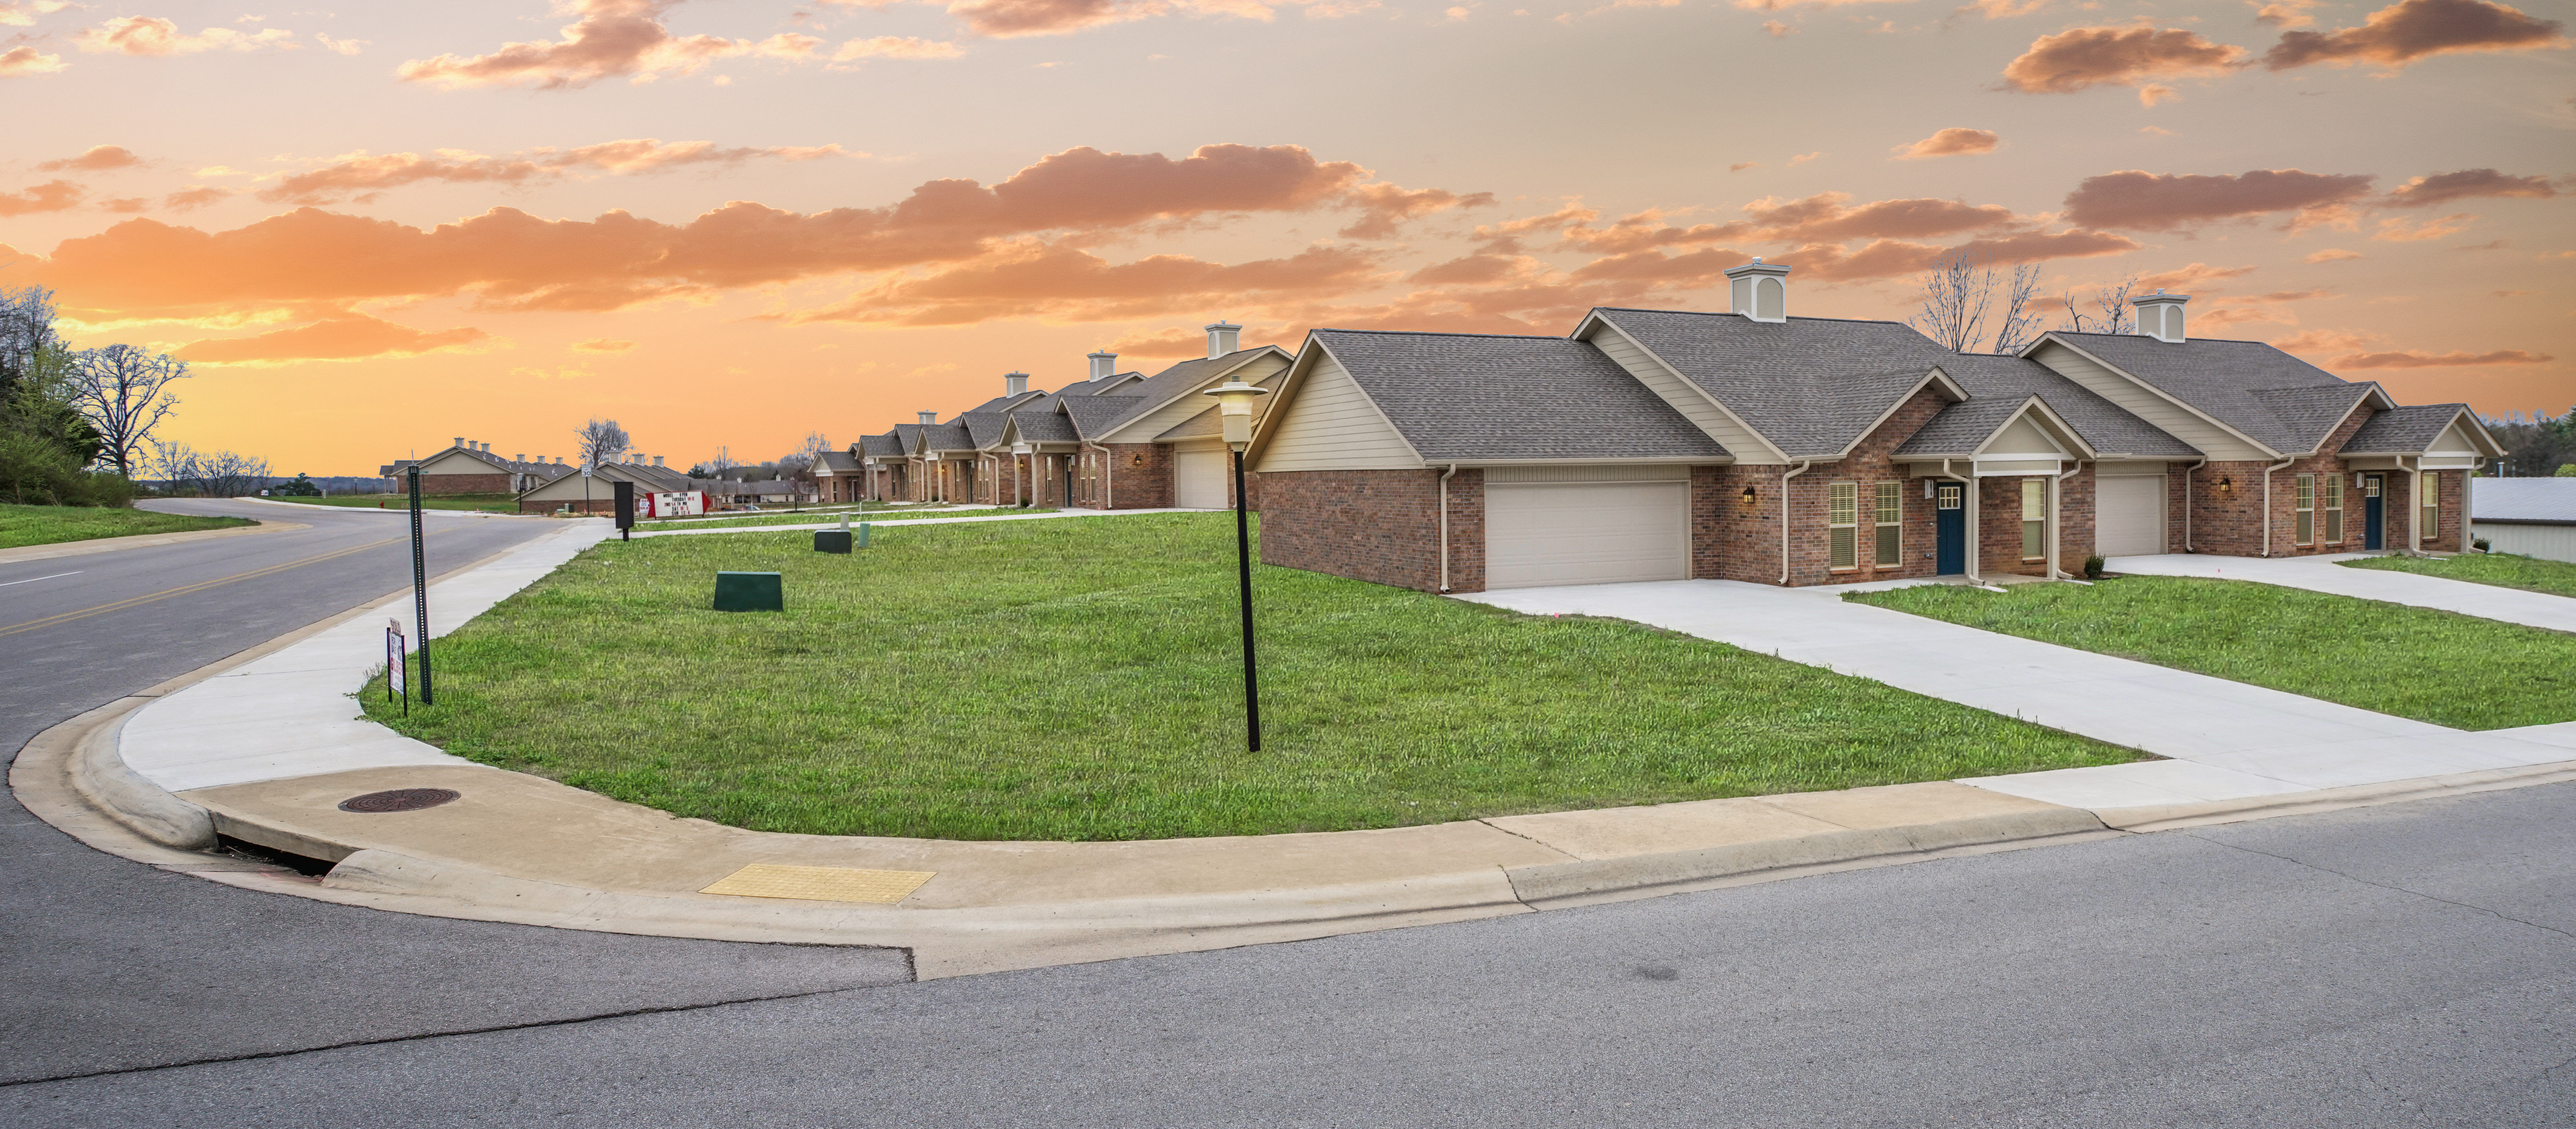 Model Open Tues 10-6 and By Appt - Call 870-656-7433  Glenbriar Commons Patio Homes